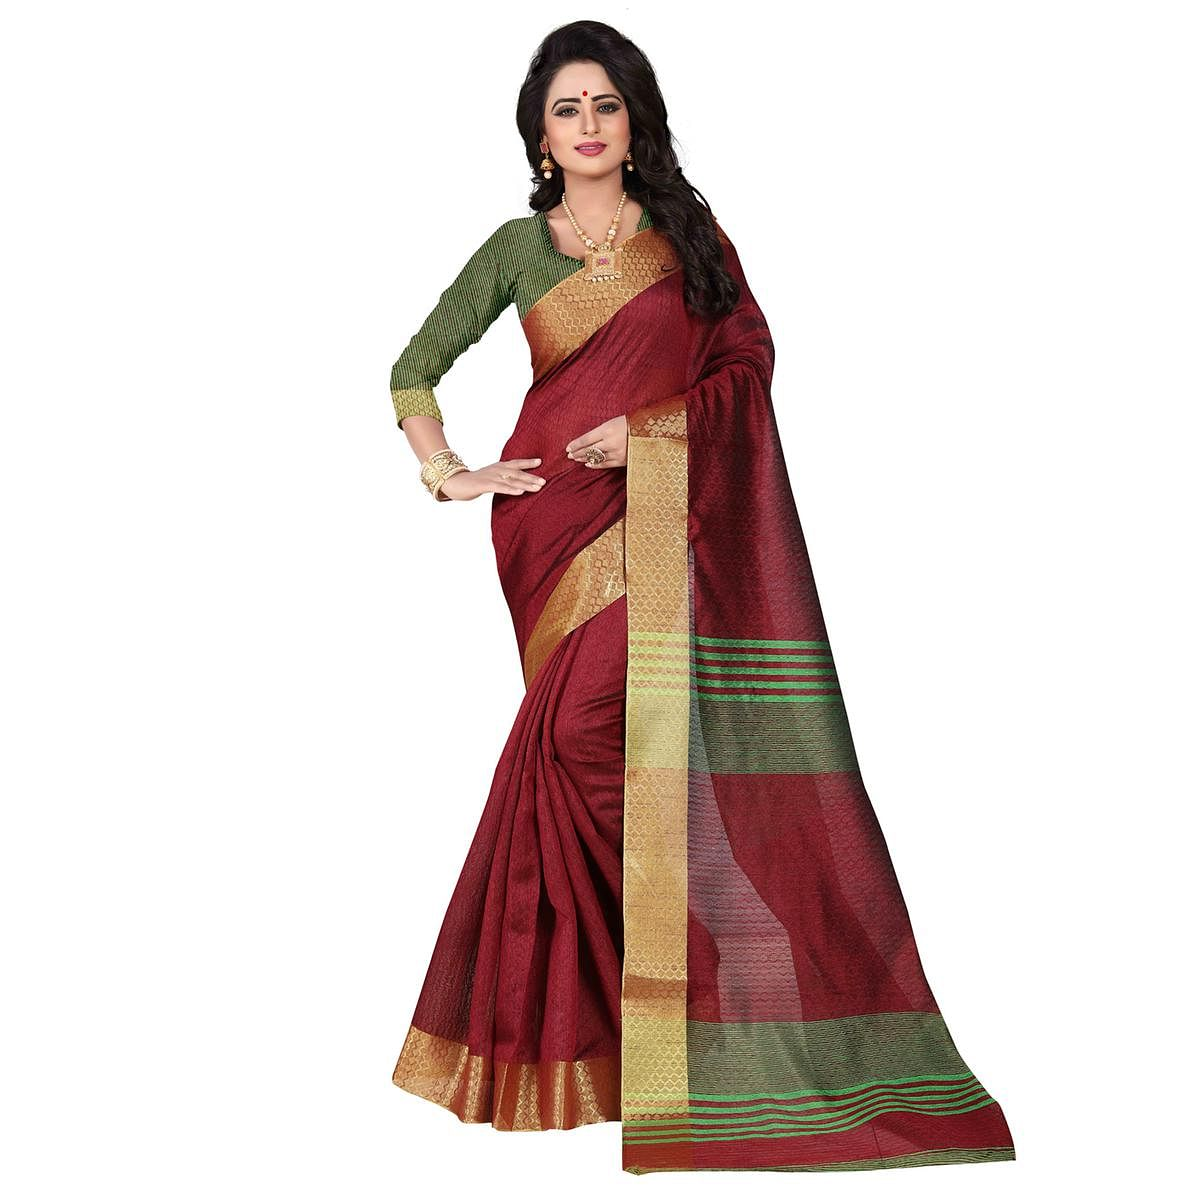 Adorable Maroon Festive Wear Jacquard Saree